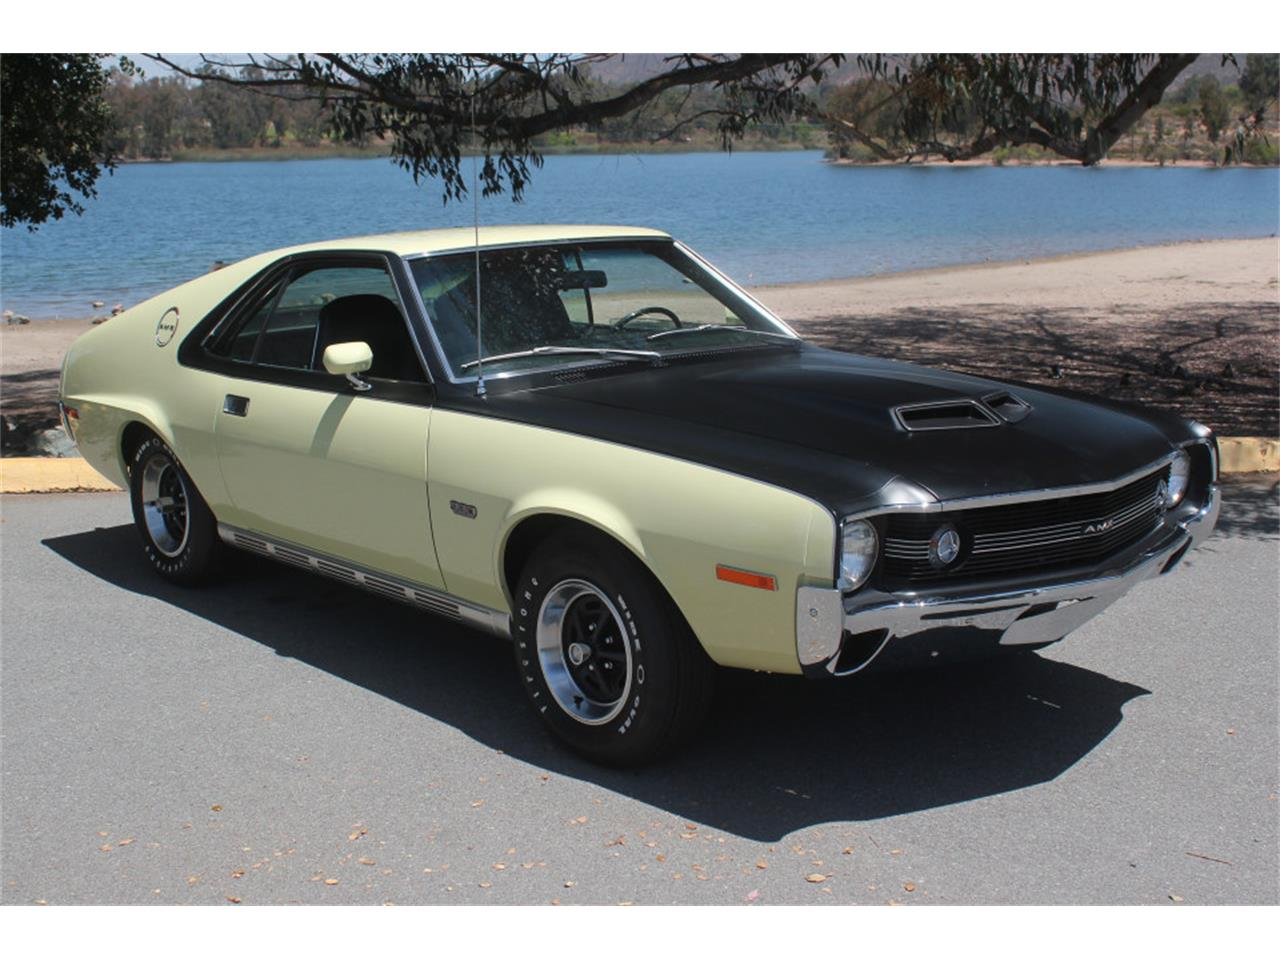 Large Picture of '70 AMC AMX located in San Diego  California - $59,500.00 Offered by Precious Metals - QCFB